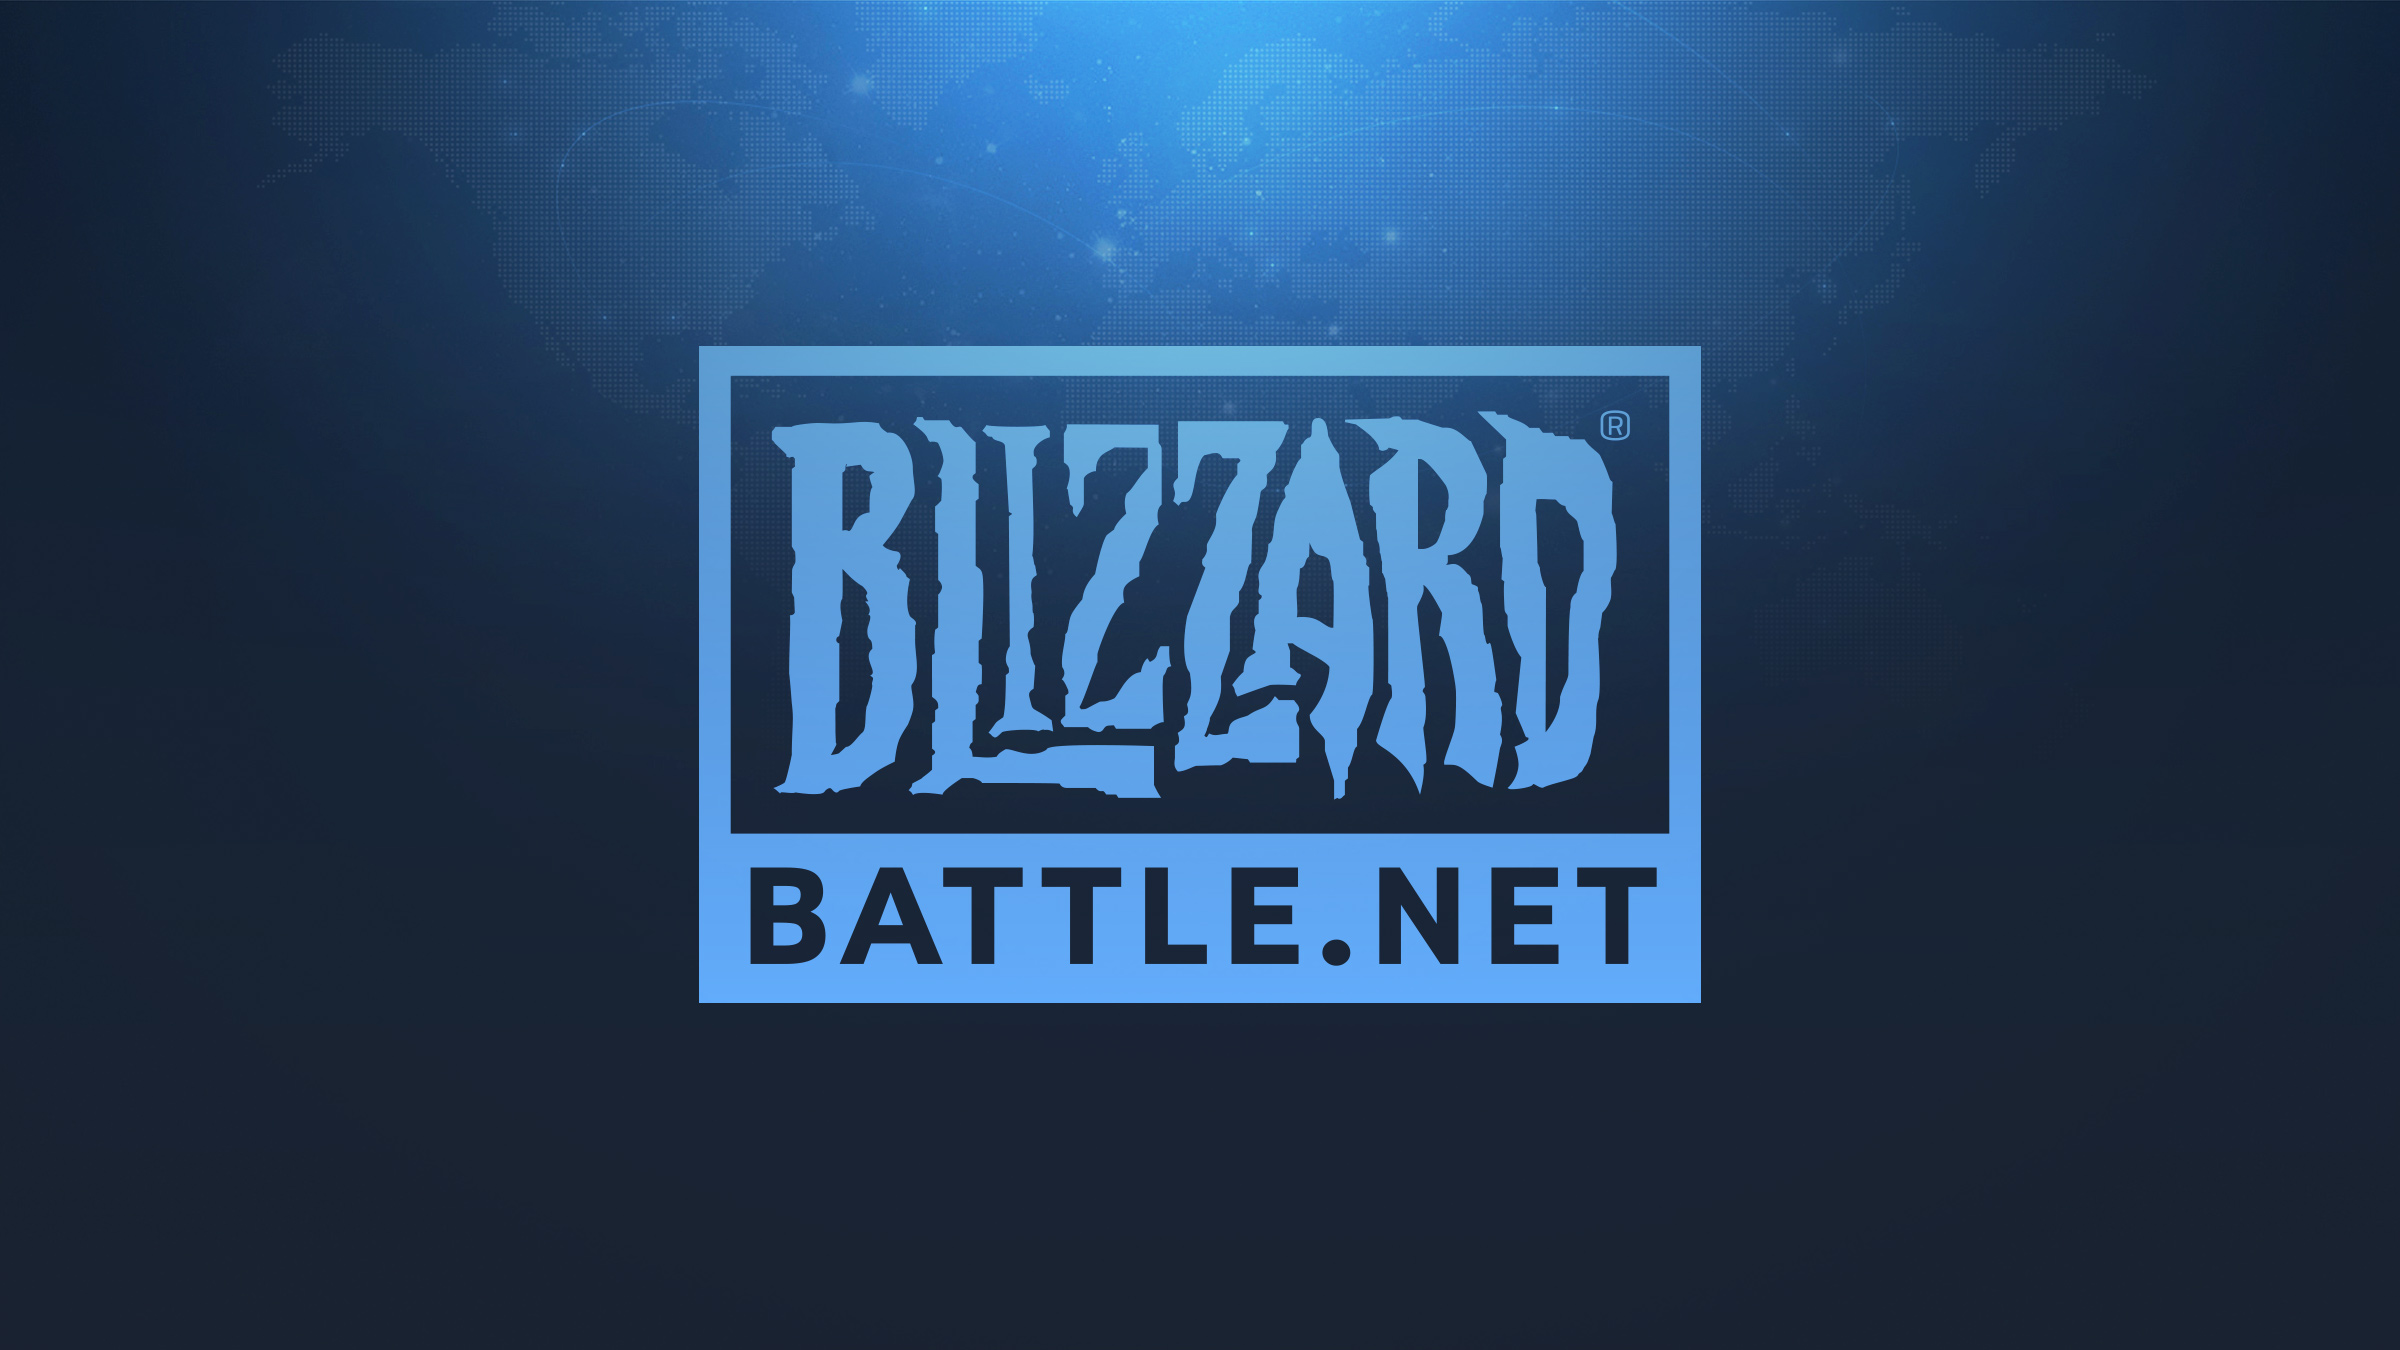 You can now send digital gifts through Blizzard Battle.net ...